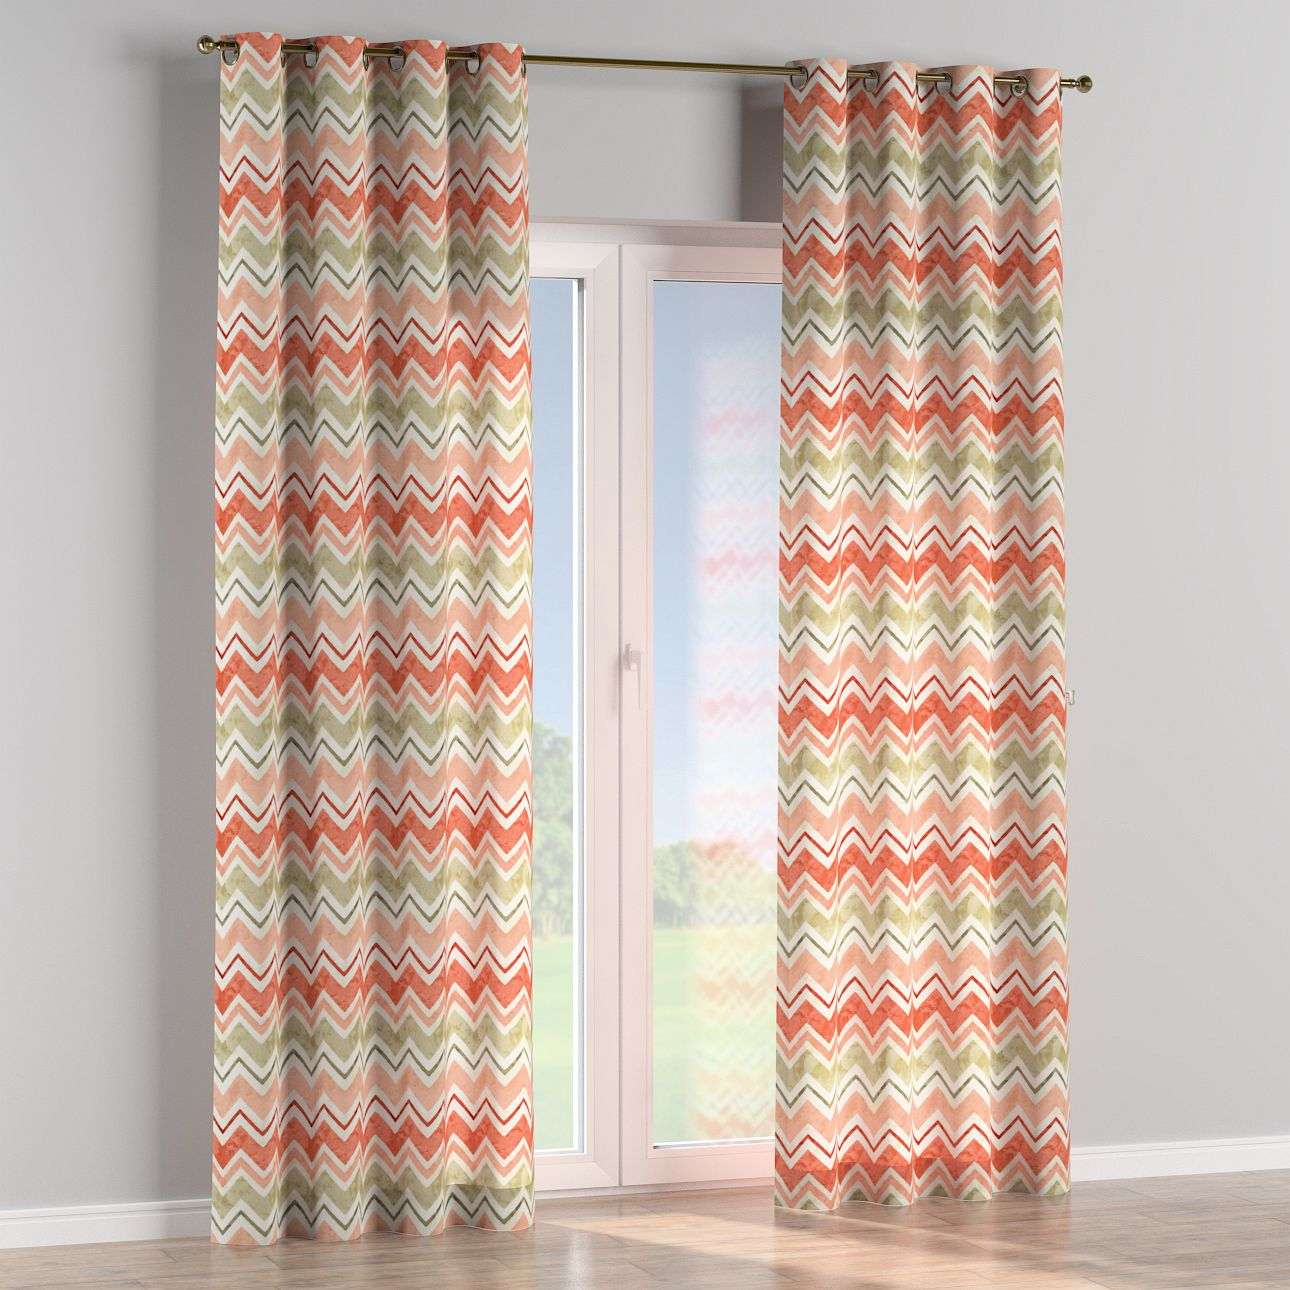 Eyelet curtains in collection Acapulco, fabric: 141-40